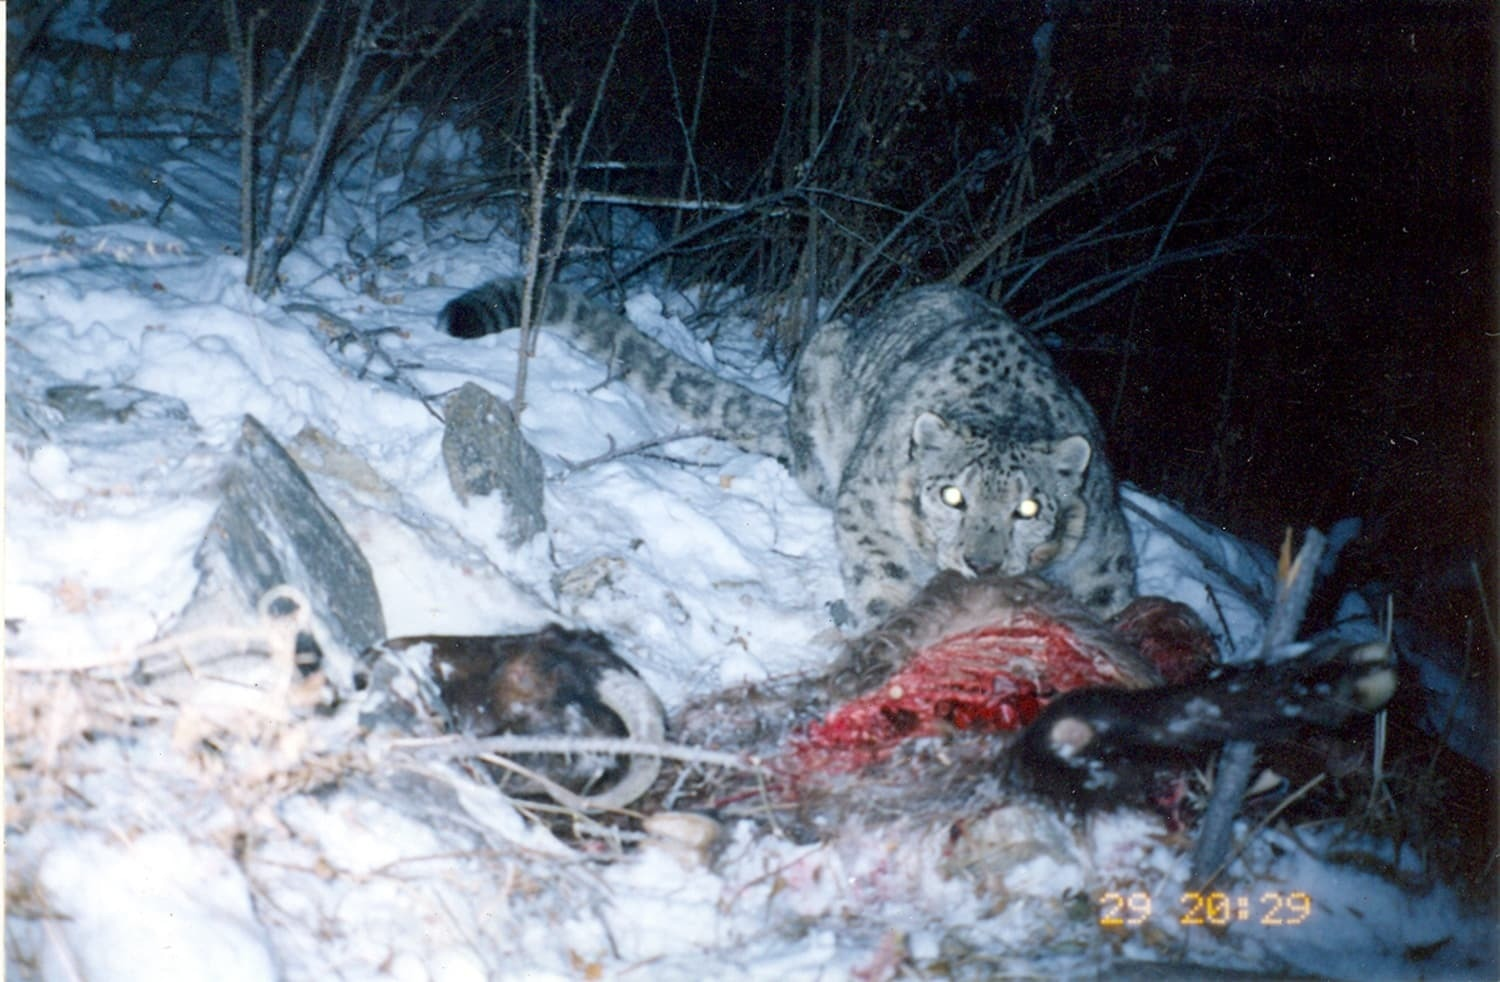 A snow leopard guarding its fresh kill in the still of the night.